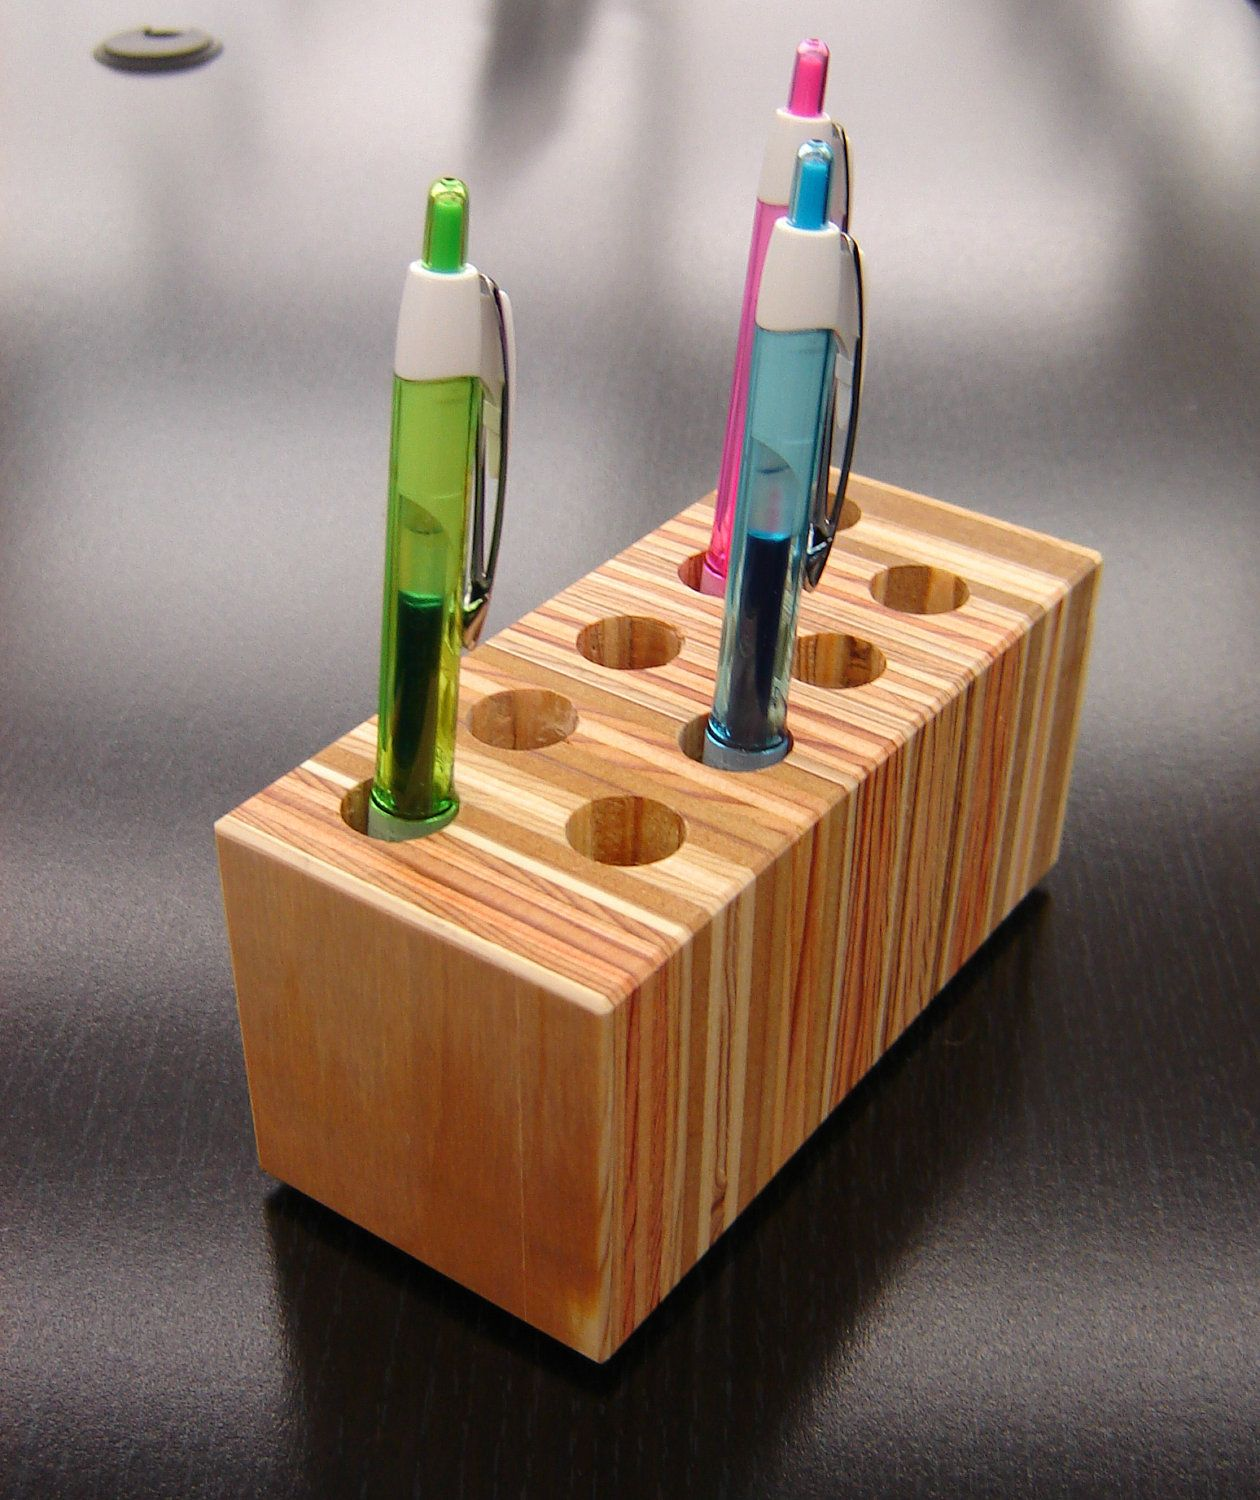 Desk Organizer Wood Pencil Holder Desktop Organizer From Repurposed Wood 25